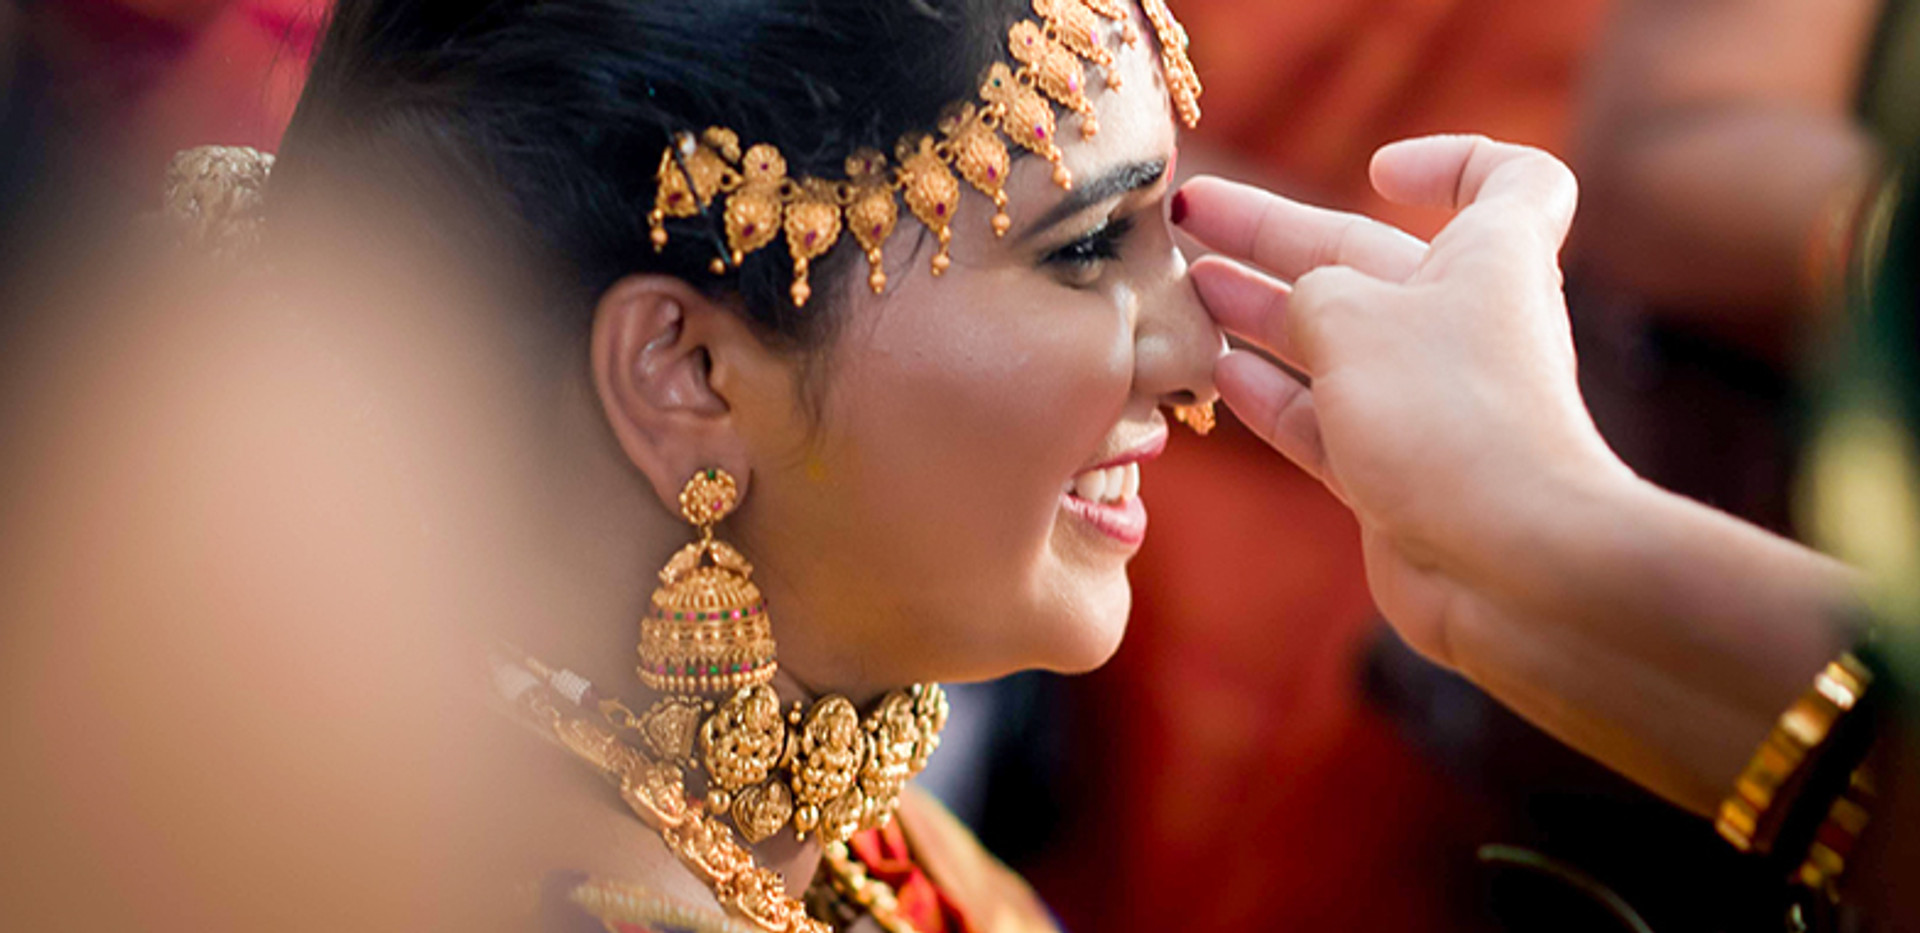 Rajeev And Samshitha-1.m4v